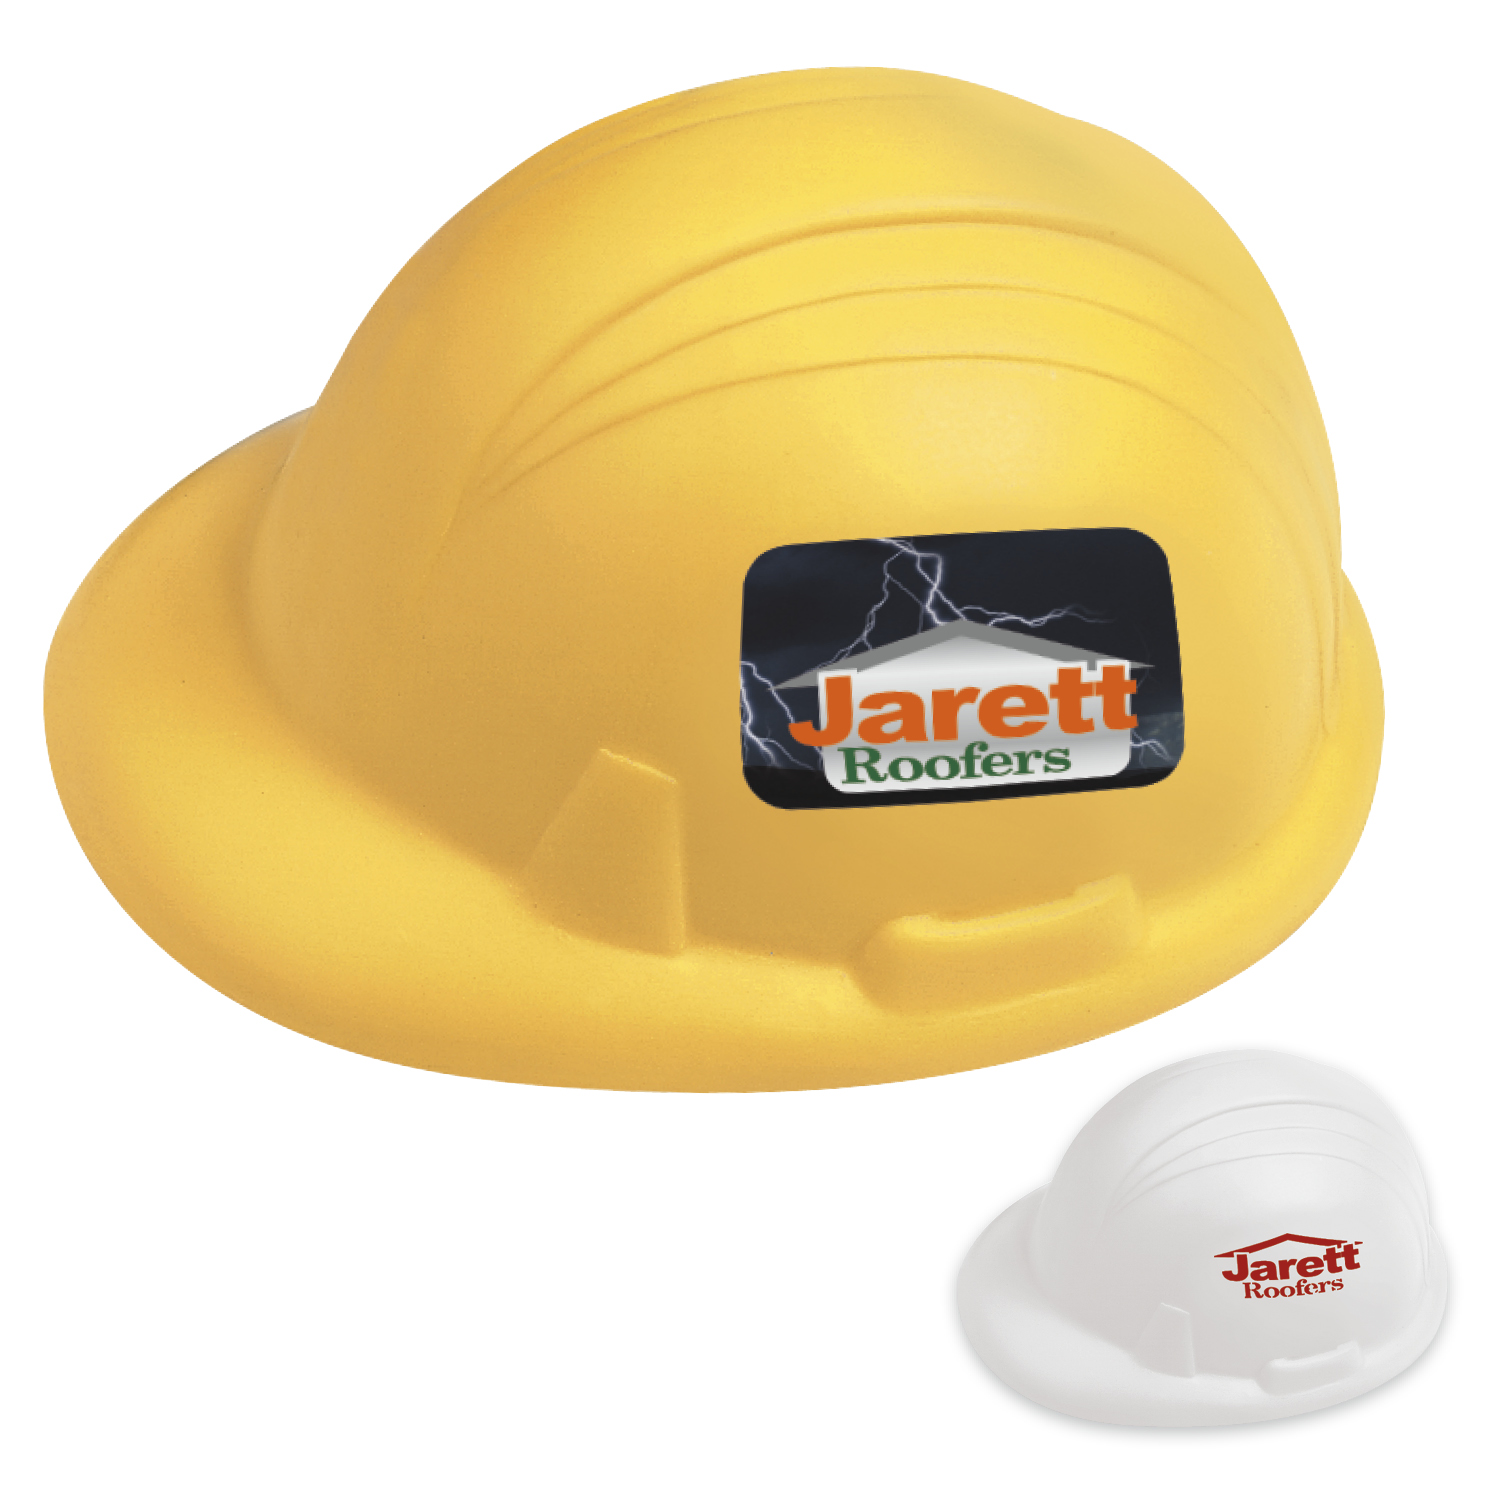 Hard Hat Stress Ball - 1 Colour Imprint